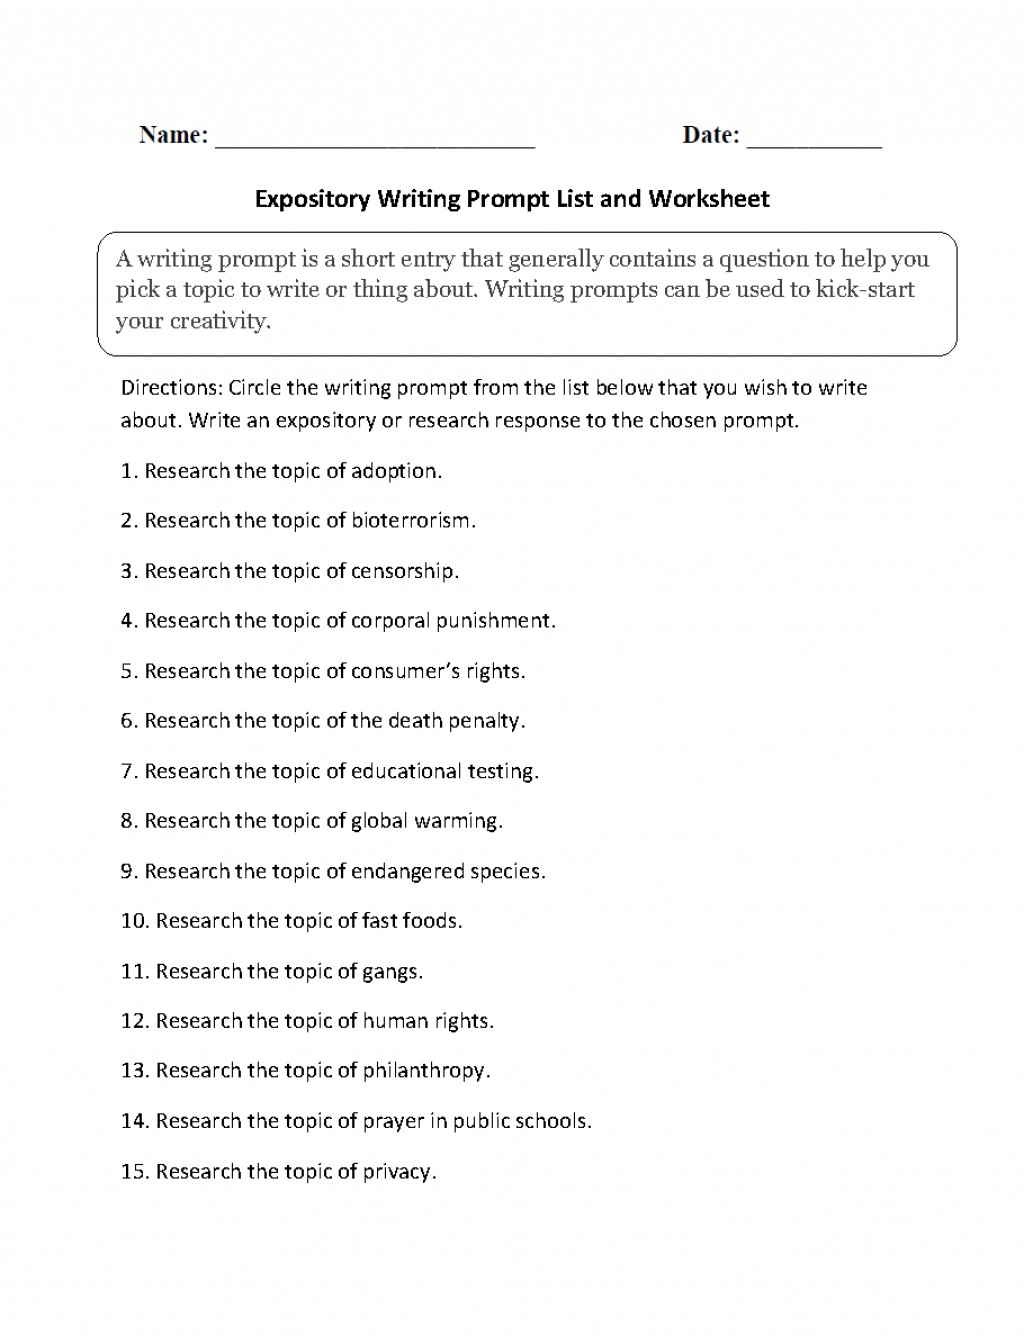 002 Informational Essay Topics Expository List Unbelievable For 5th Grade 4th Large